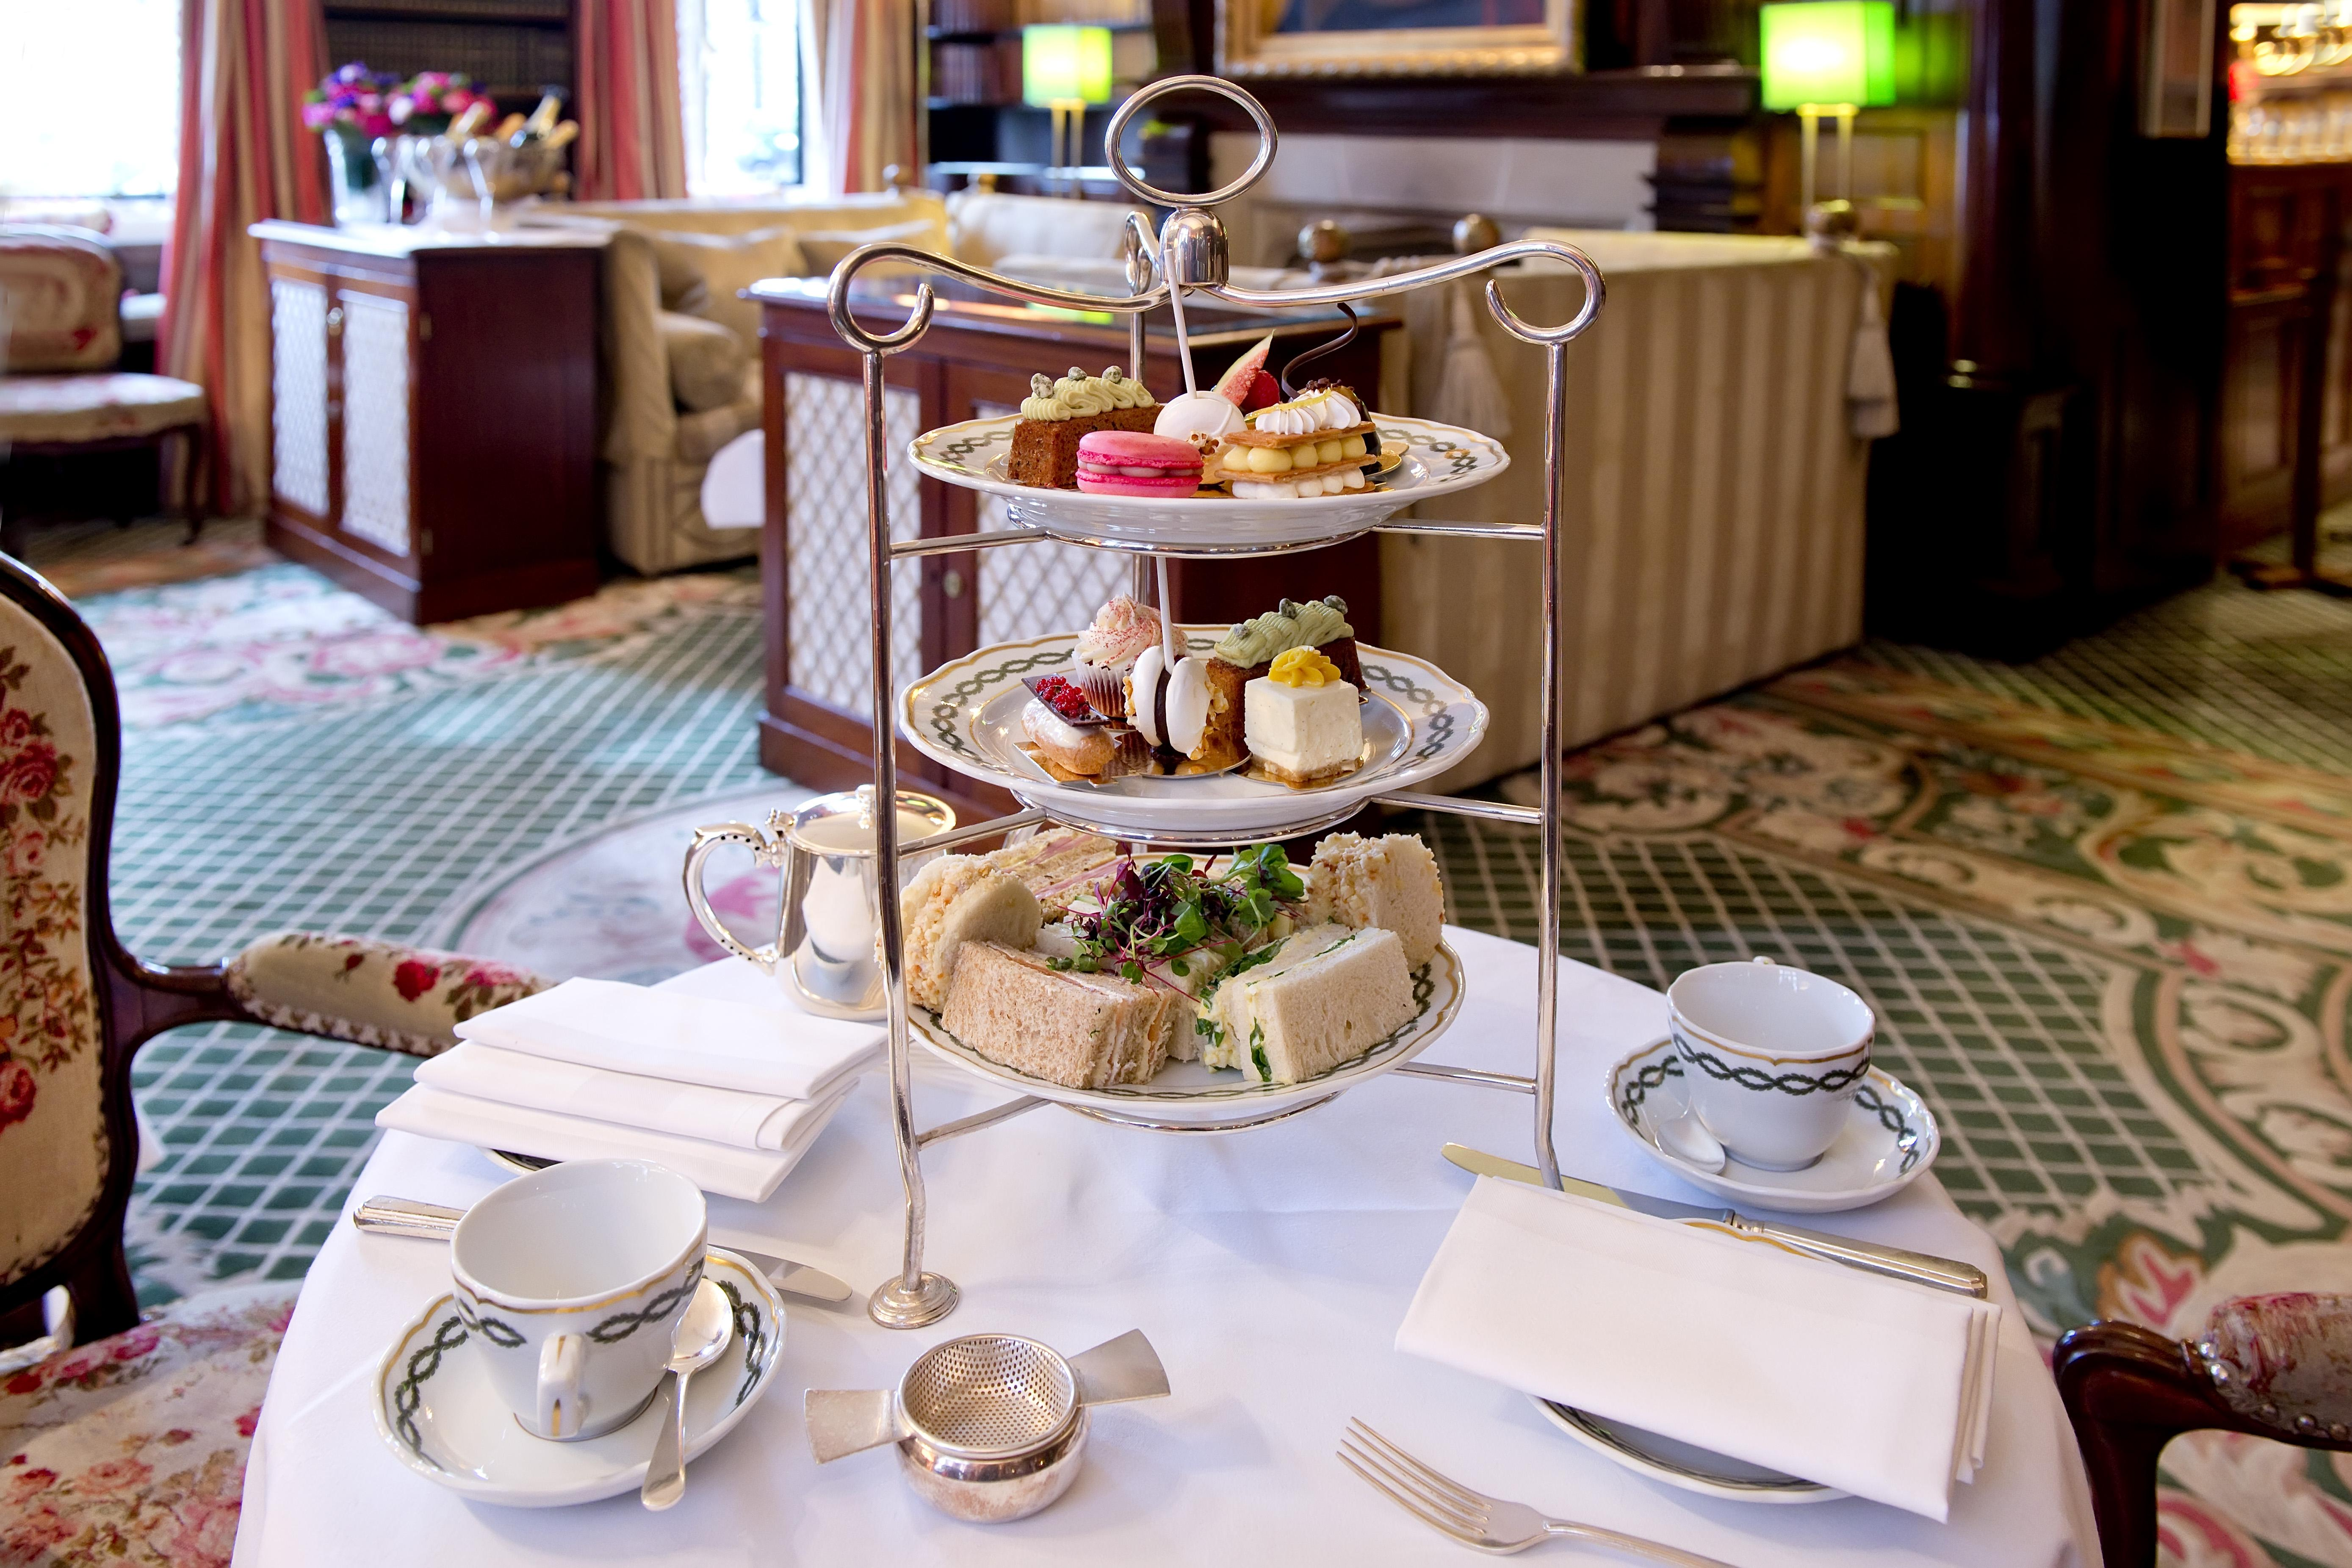 Image of Afternoon Tea at The Milestone Hotel and Residences